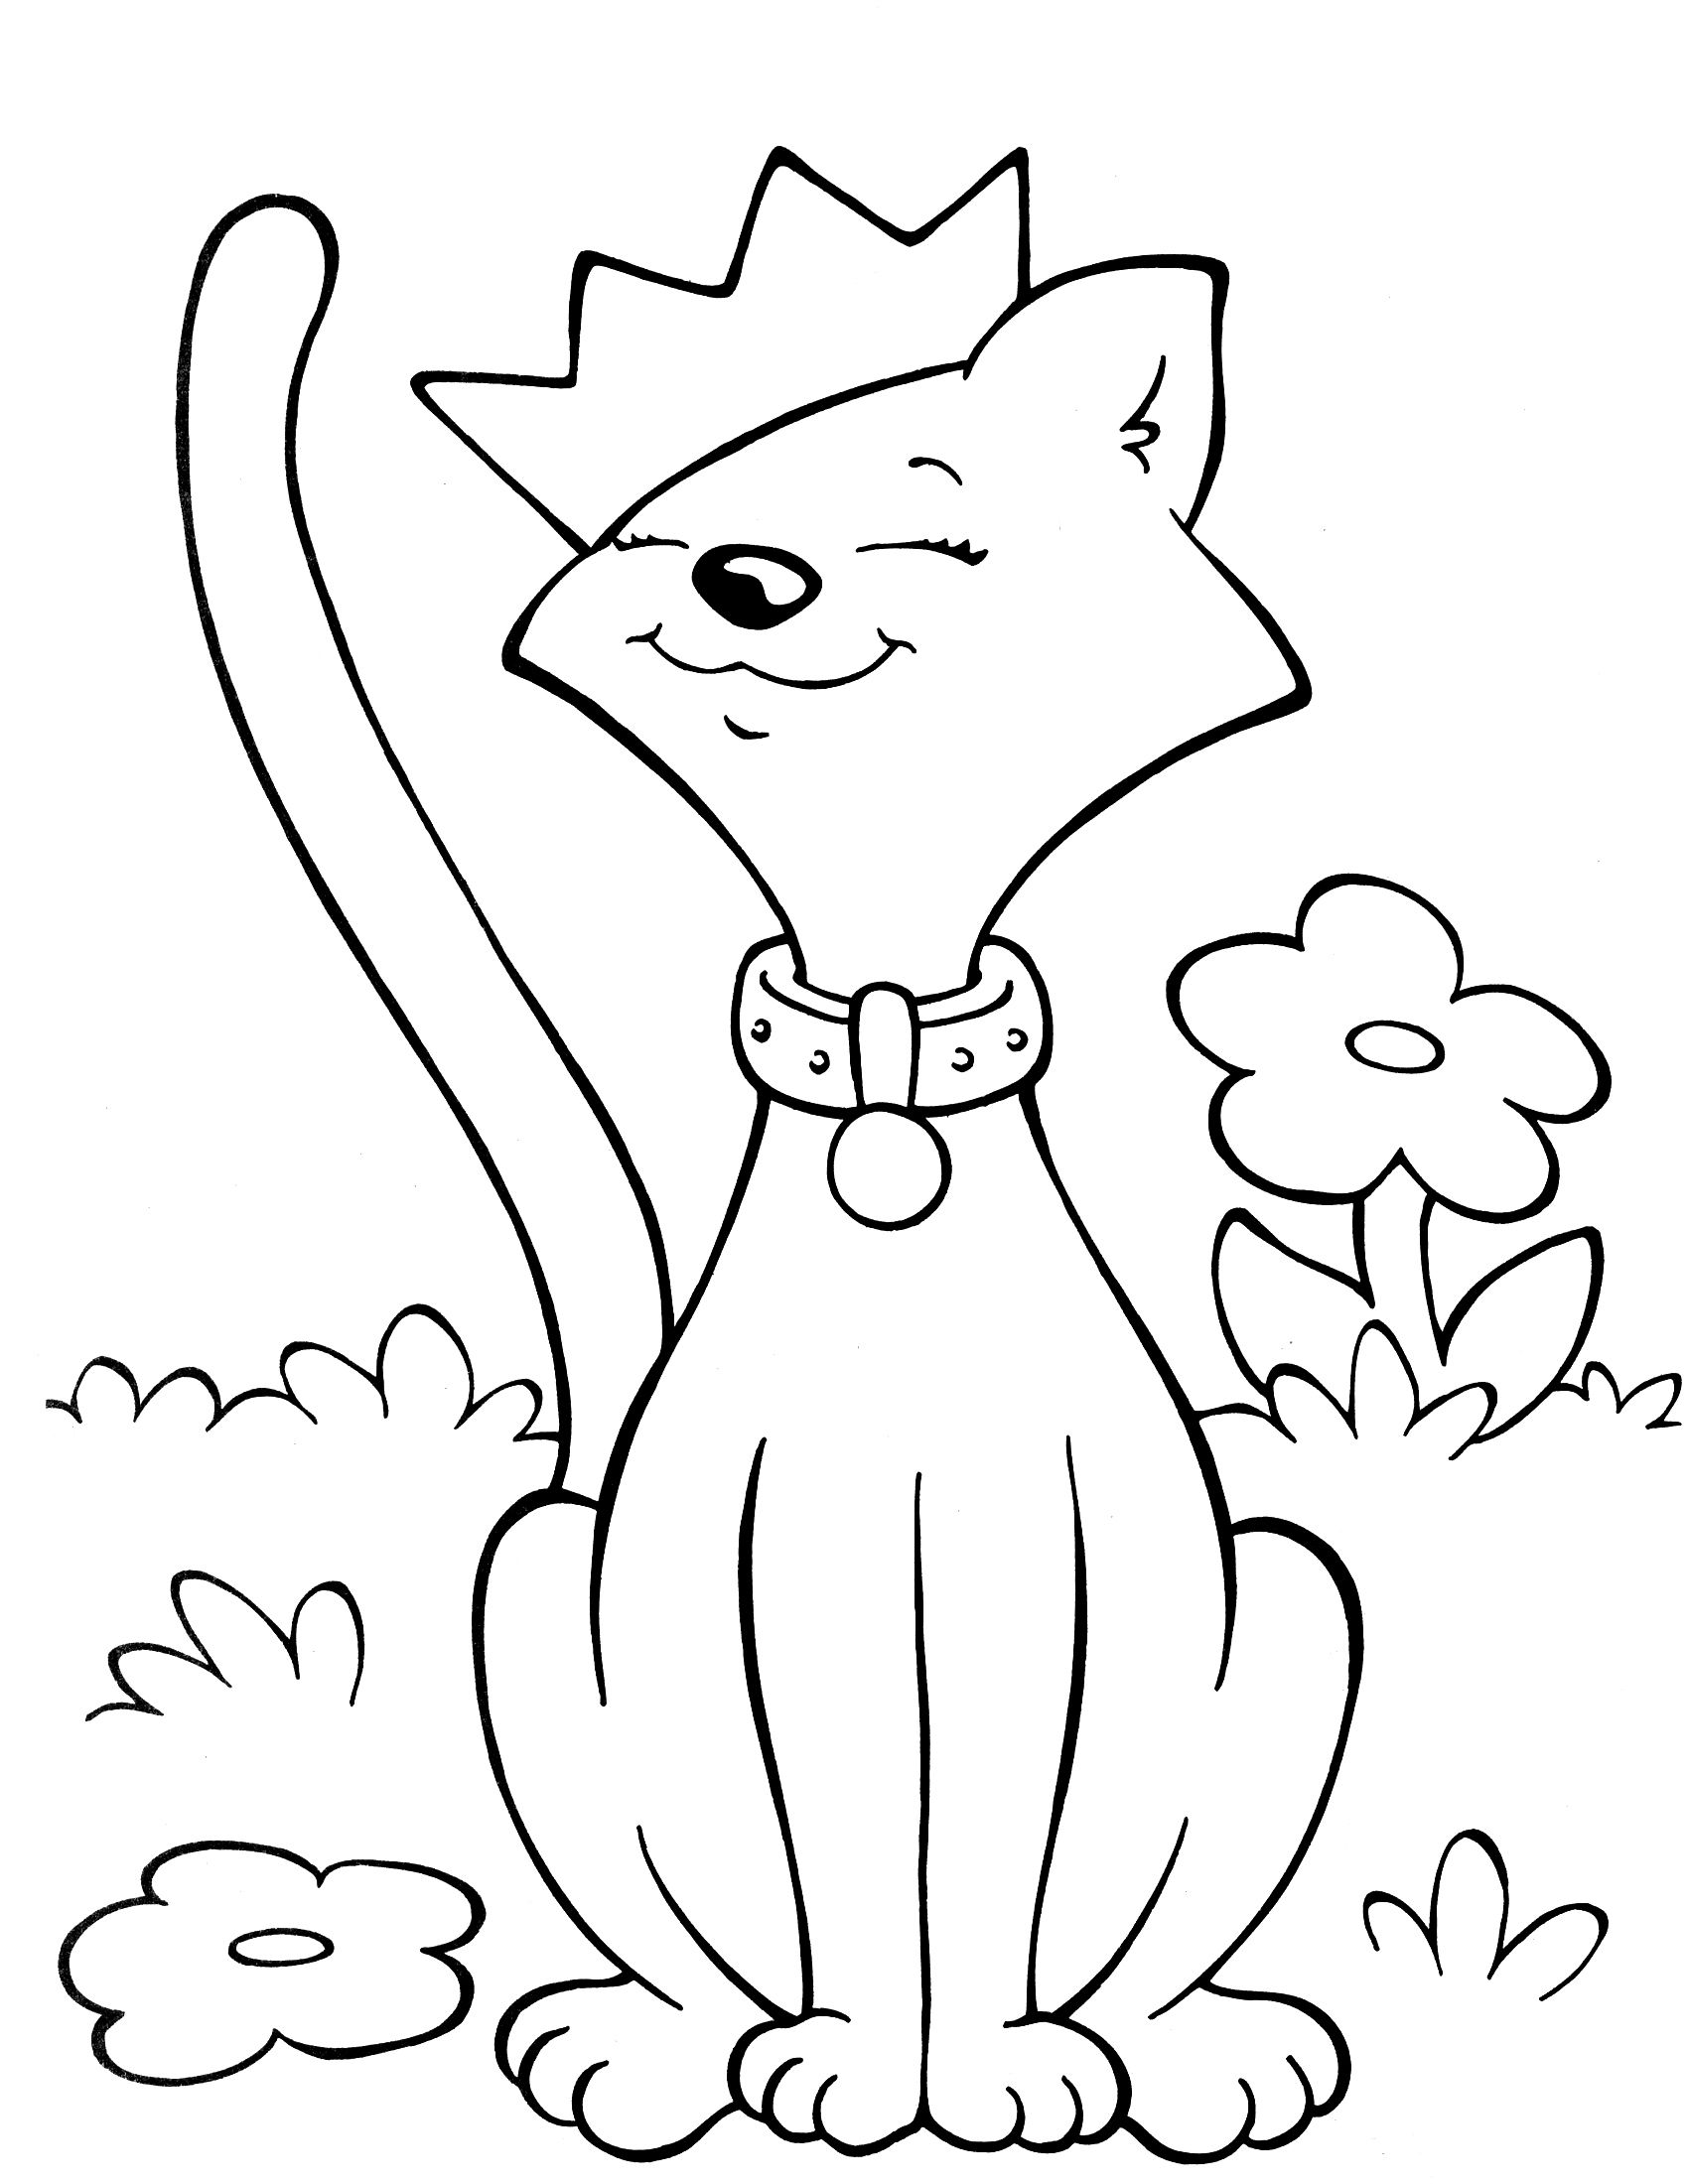 Crayola Coloring Pages Only Coloring Pagesonly Coloring Pages Mobile Version Halloween Coloring Pages Ariel Coloring Pages Crayola Coloring Pages